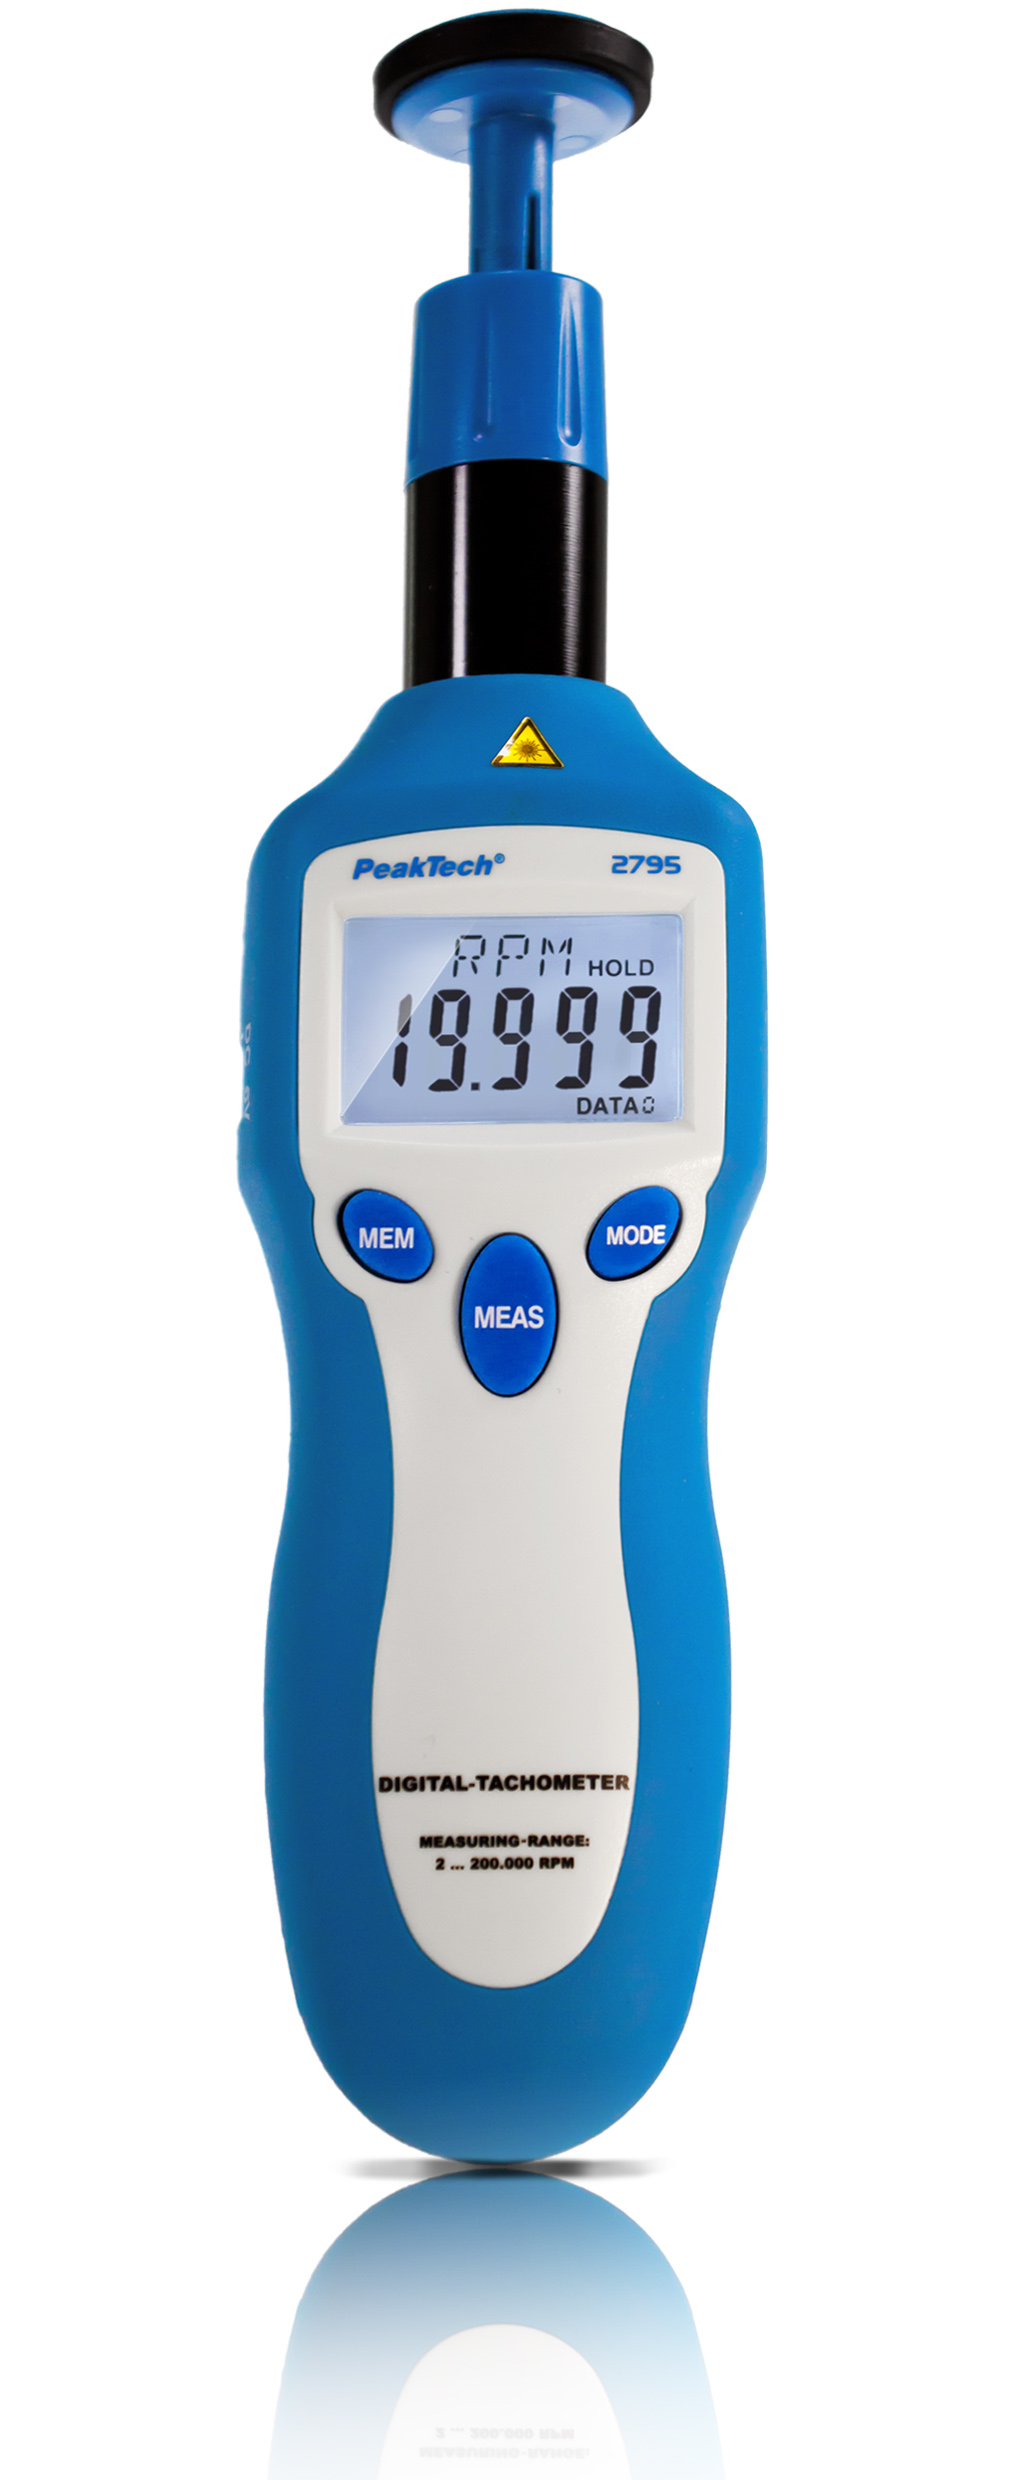 «PeakTech® P 2795» Tachometer photo-contact type with laser